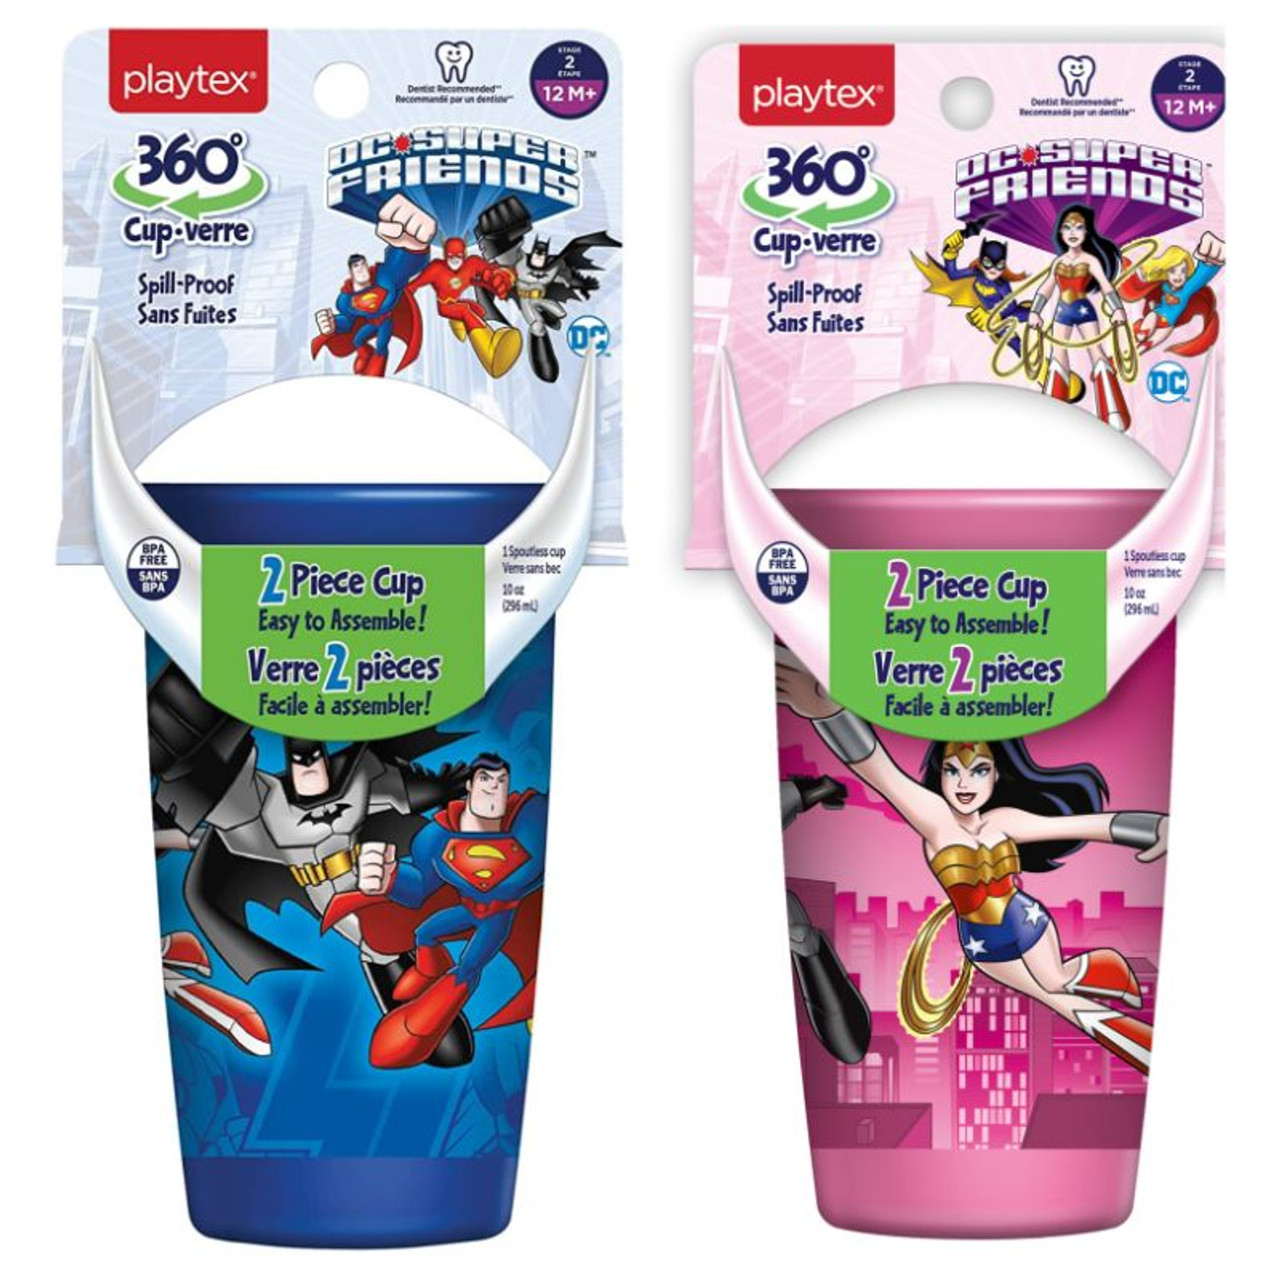 Playtex 360 degree Spoutless Cup, Stage 2, 12M+, 10 oz - 2 Pack